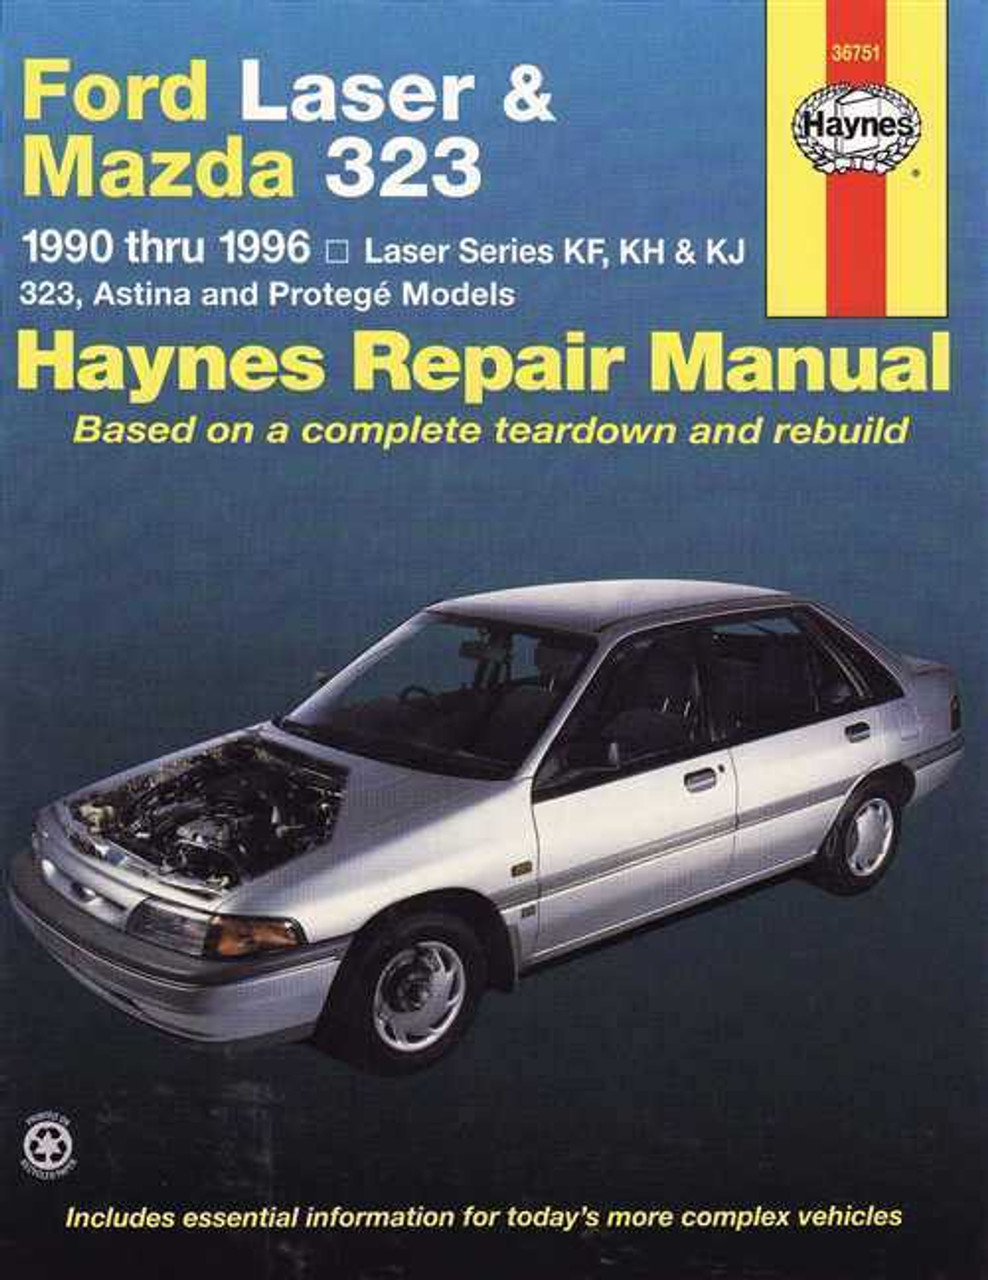 Ford Laser Mazda 323 1990 1996 Workshop Manualrhautomotobookshopau: Mazda 323 Hatchback Wiring Diagram At Elf-jo.com